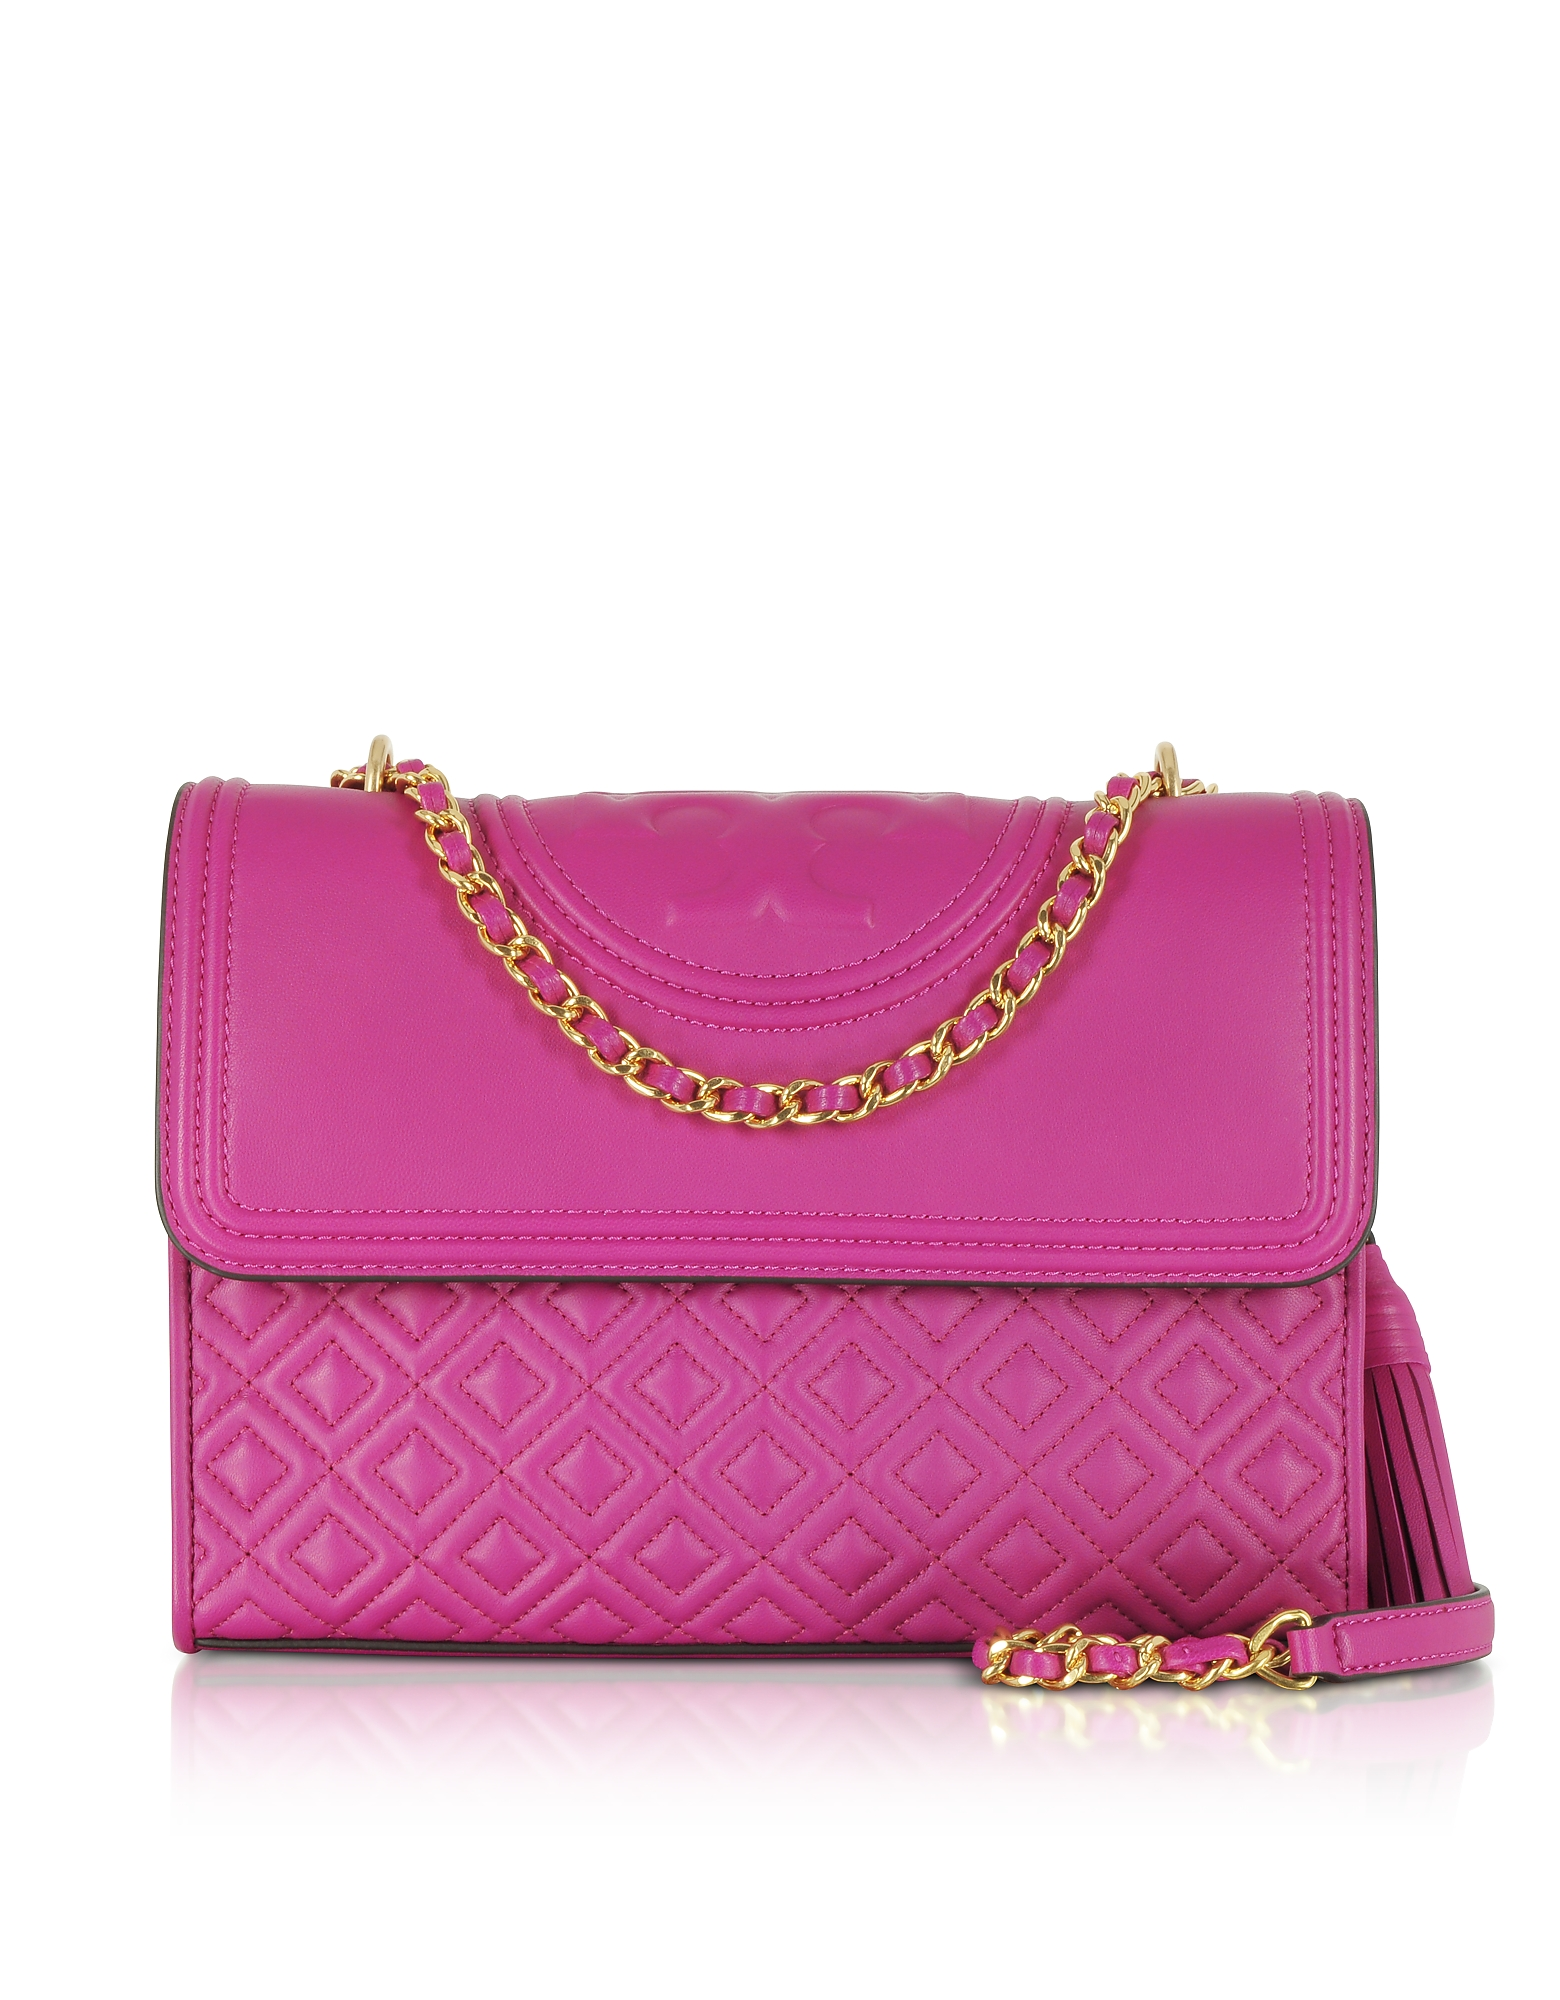 Tory Burch Handbags, Fleming Party Fuchsia Leather Convertible Shoulder Bag